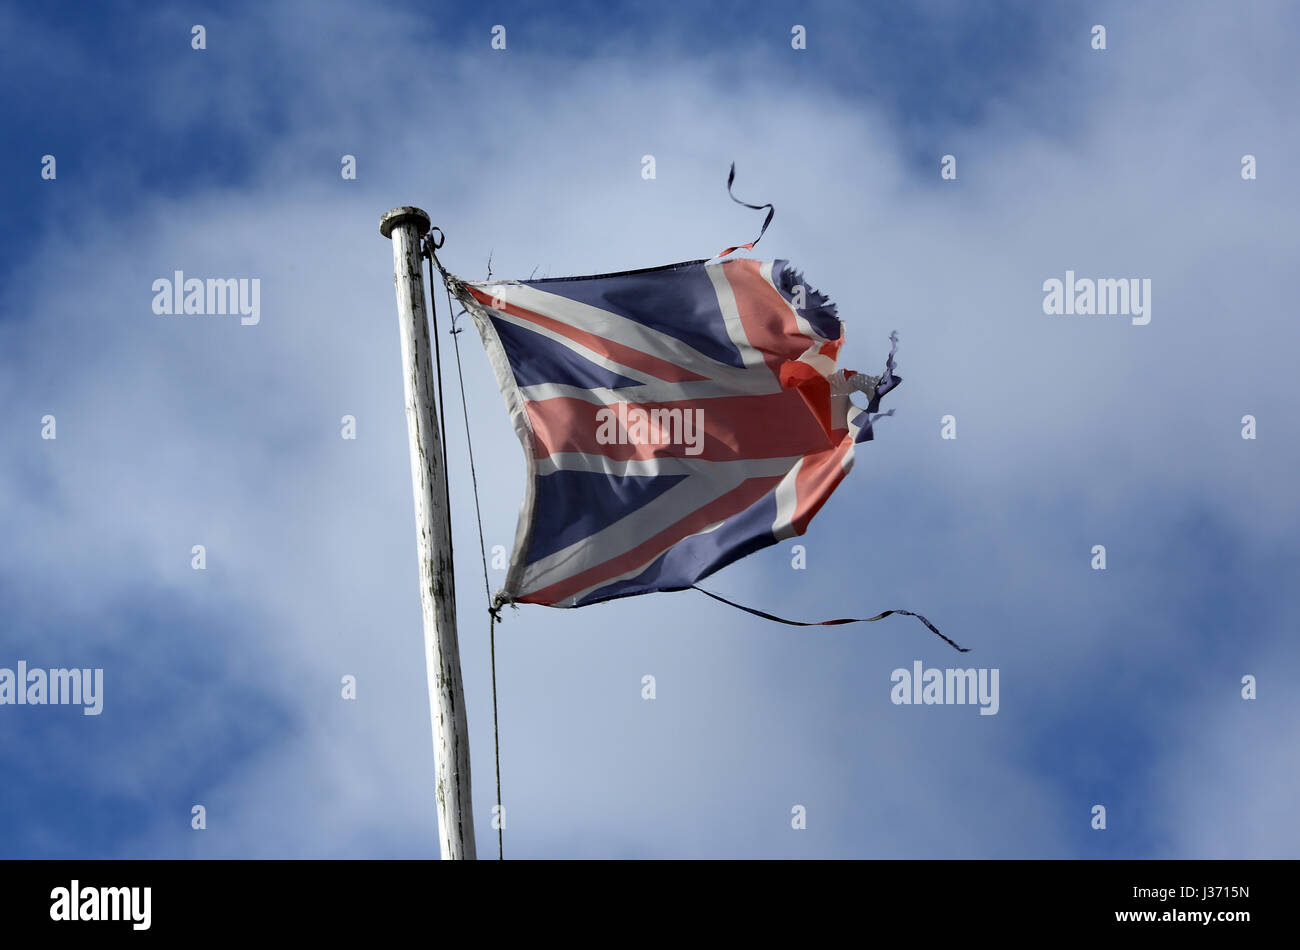 A tattered Union Flag blowing in the wind pictured against a cloudy bright blue sky of a flagpole in Ballater Scotland - Stock Image